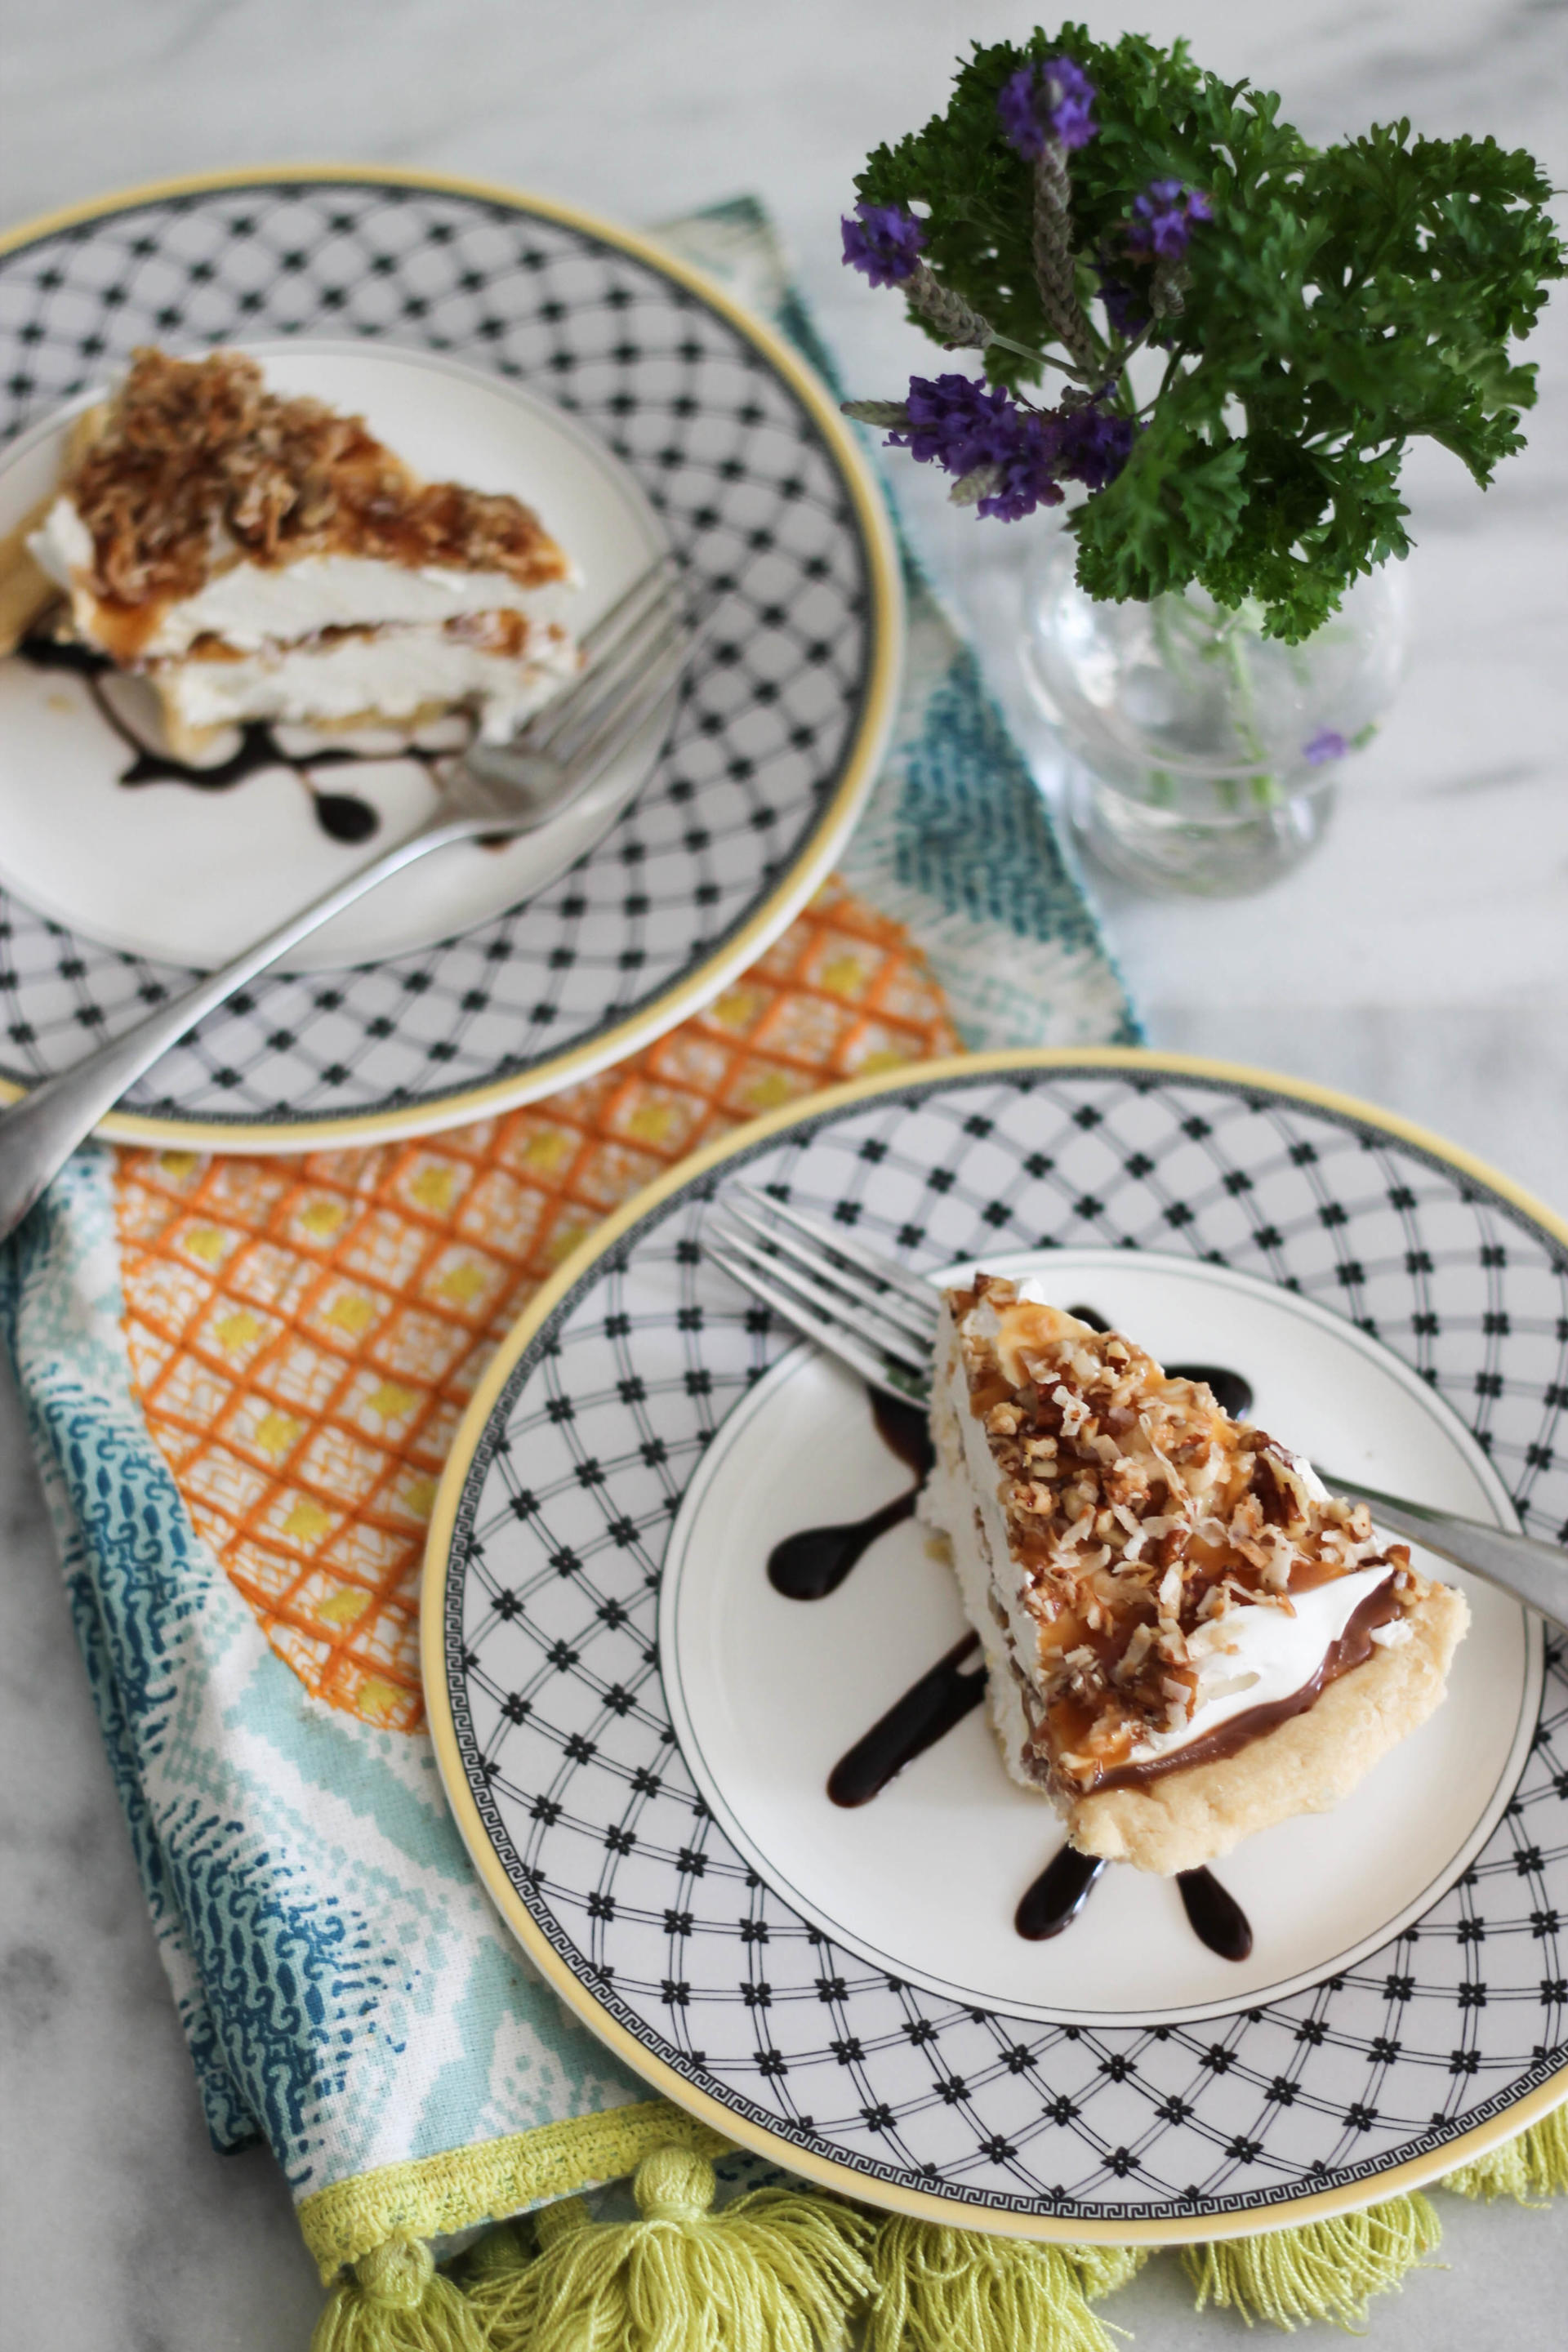 Caramel Pie - A Cream Cheese Caramel Frozen Treat